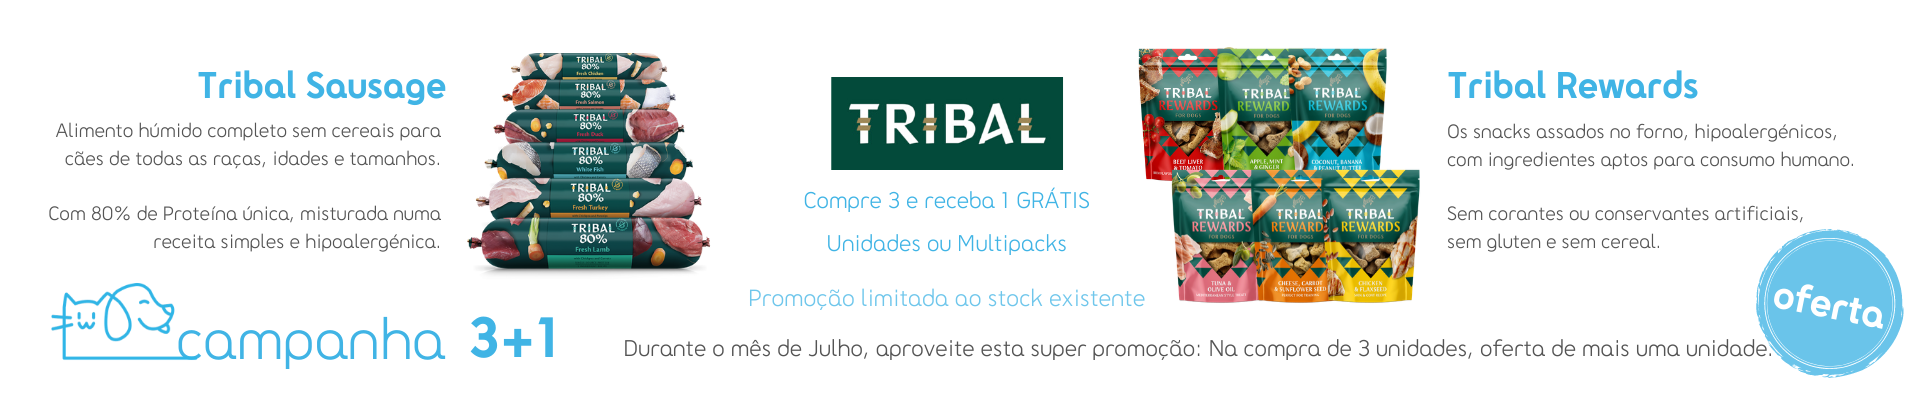 Campanha 3+1 Tribal Rewards